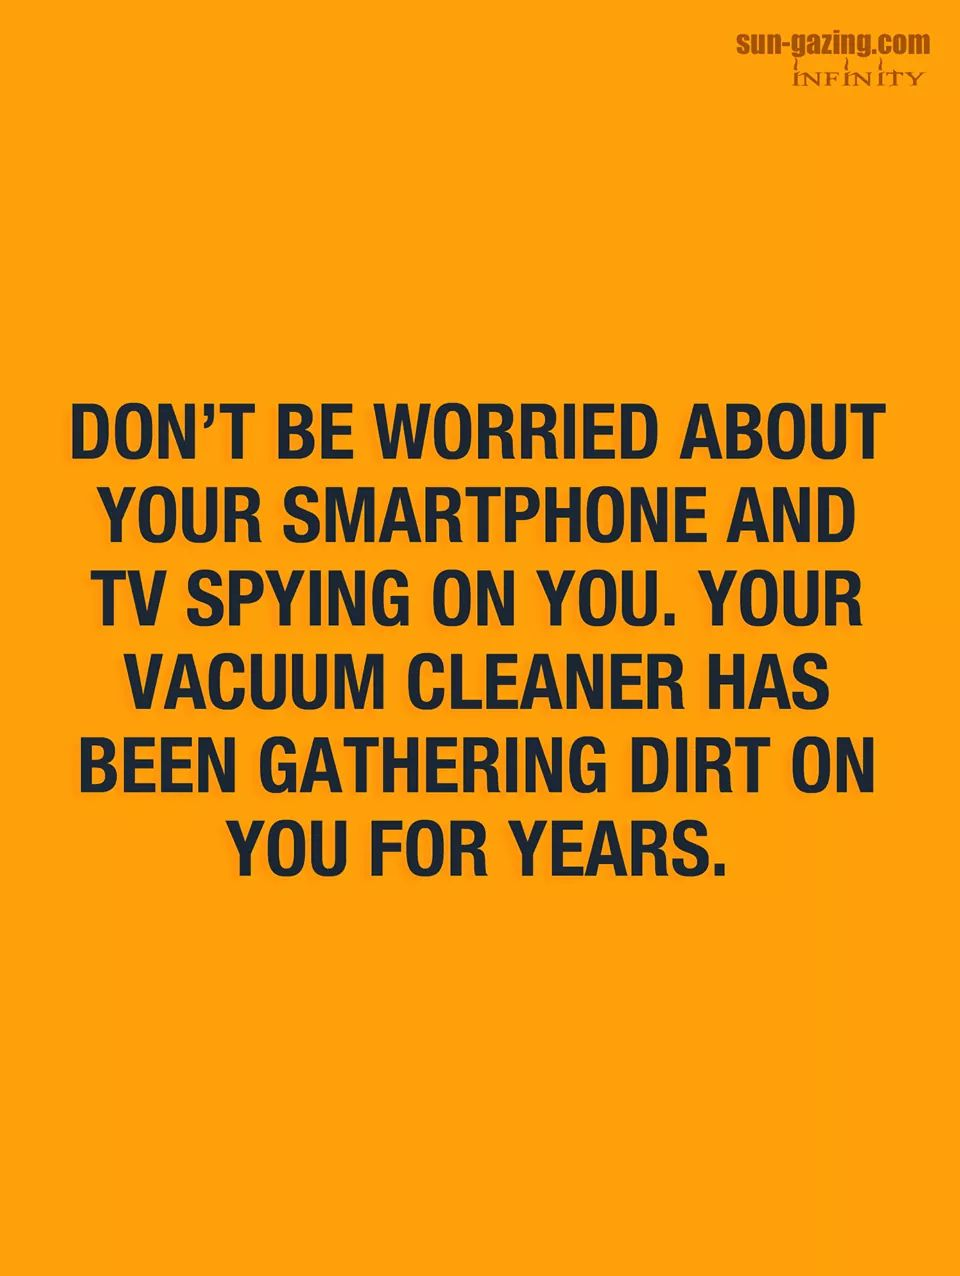 Smartphone and TV spying on you?